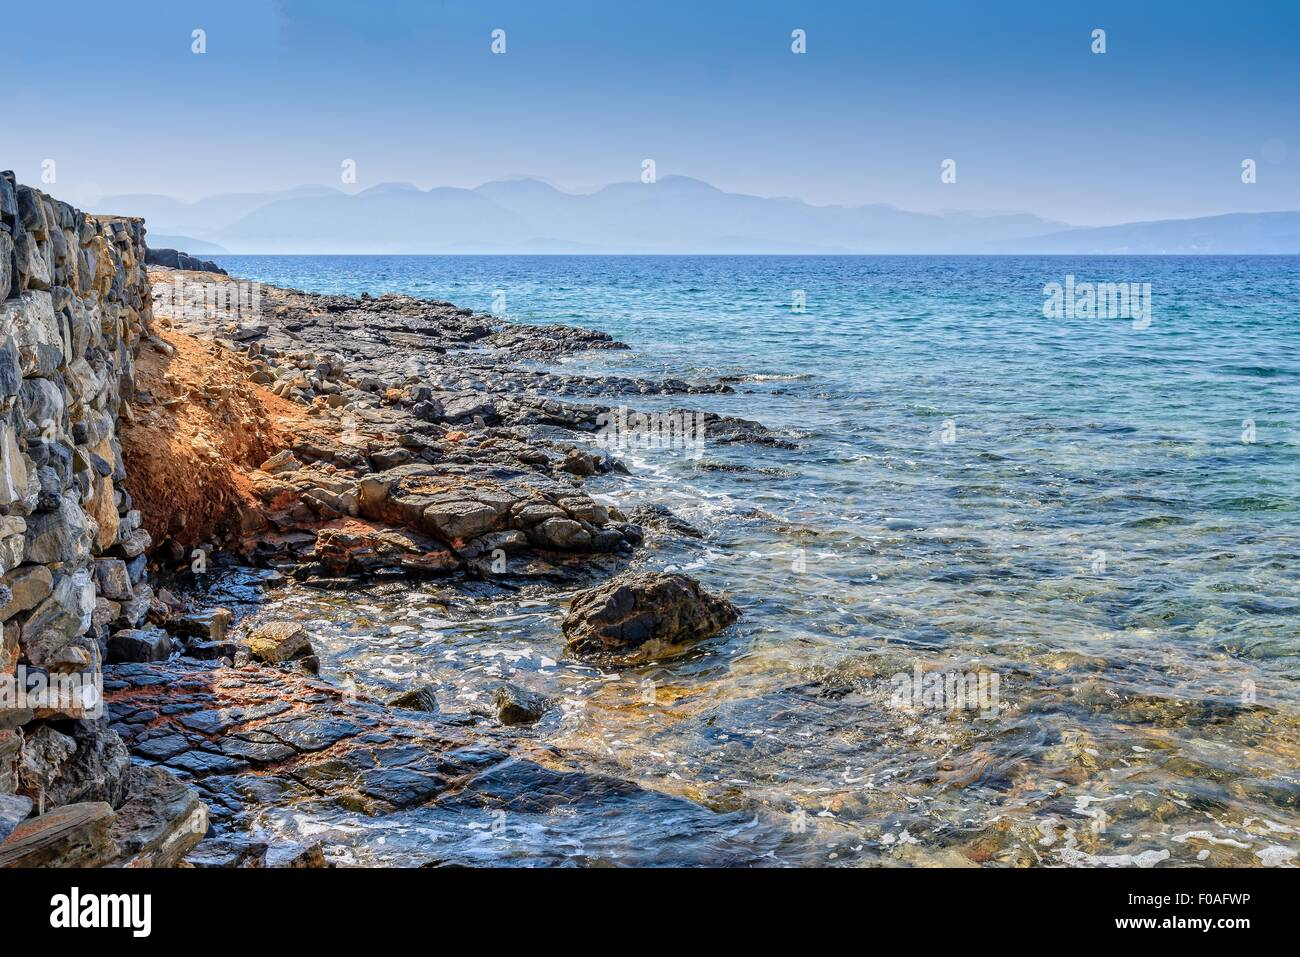 Sea lapping against rocks with a stone wall in the foreground and hills in the distance. - Stock Image